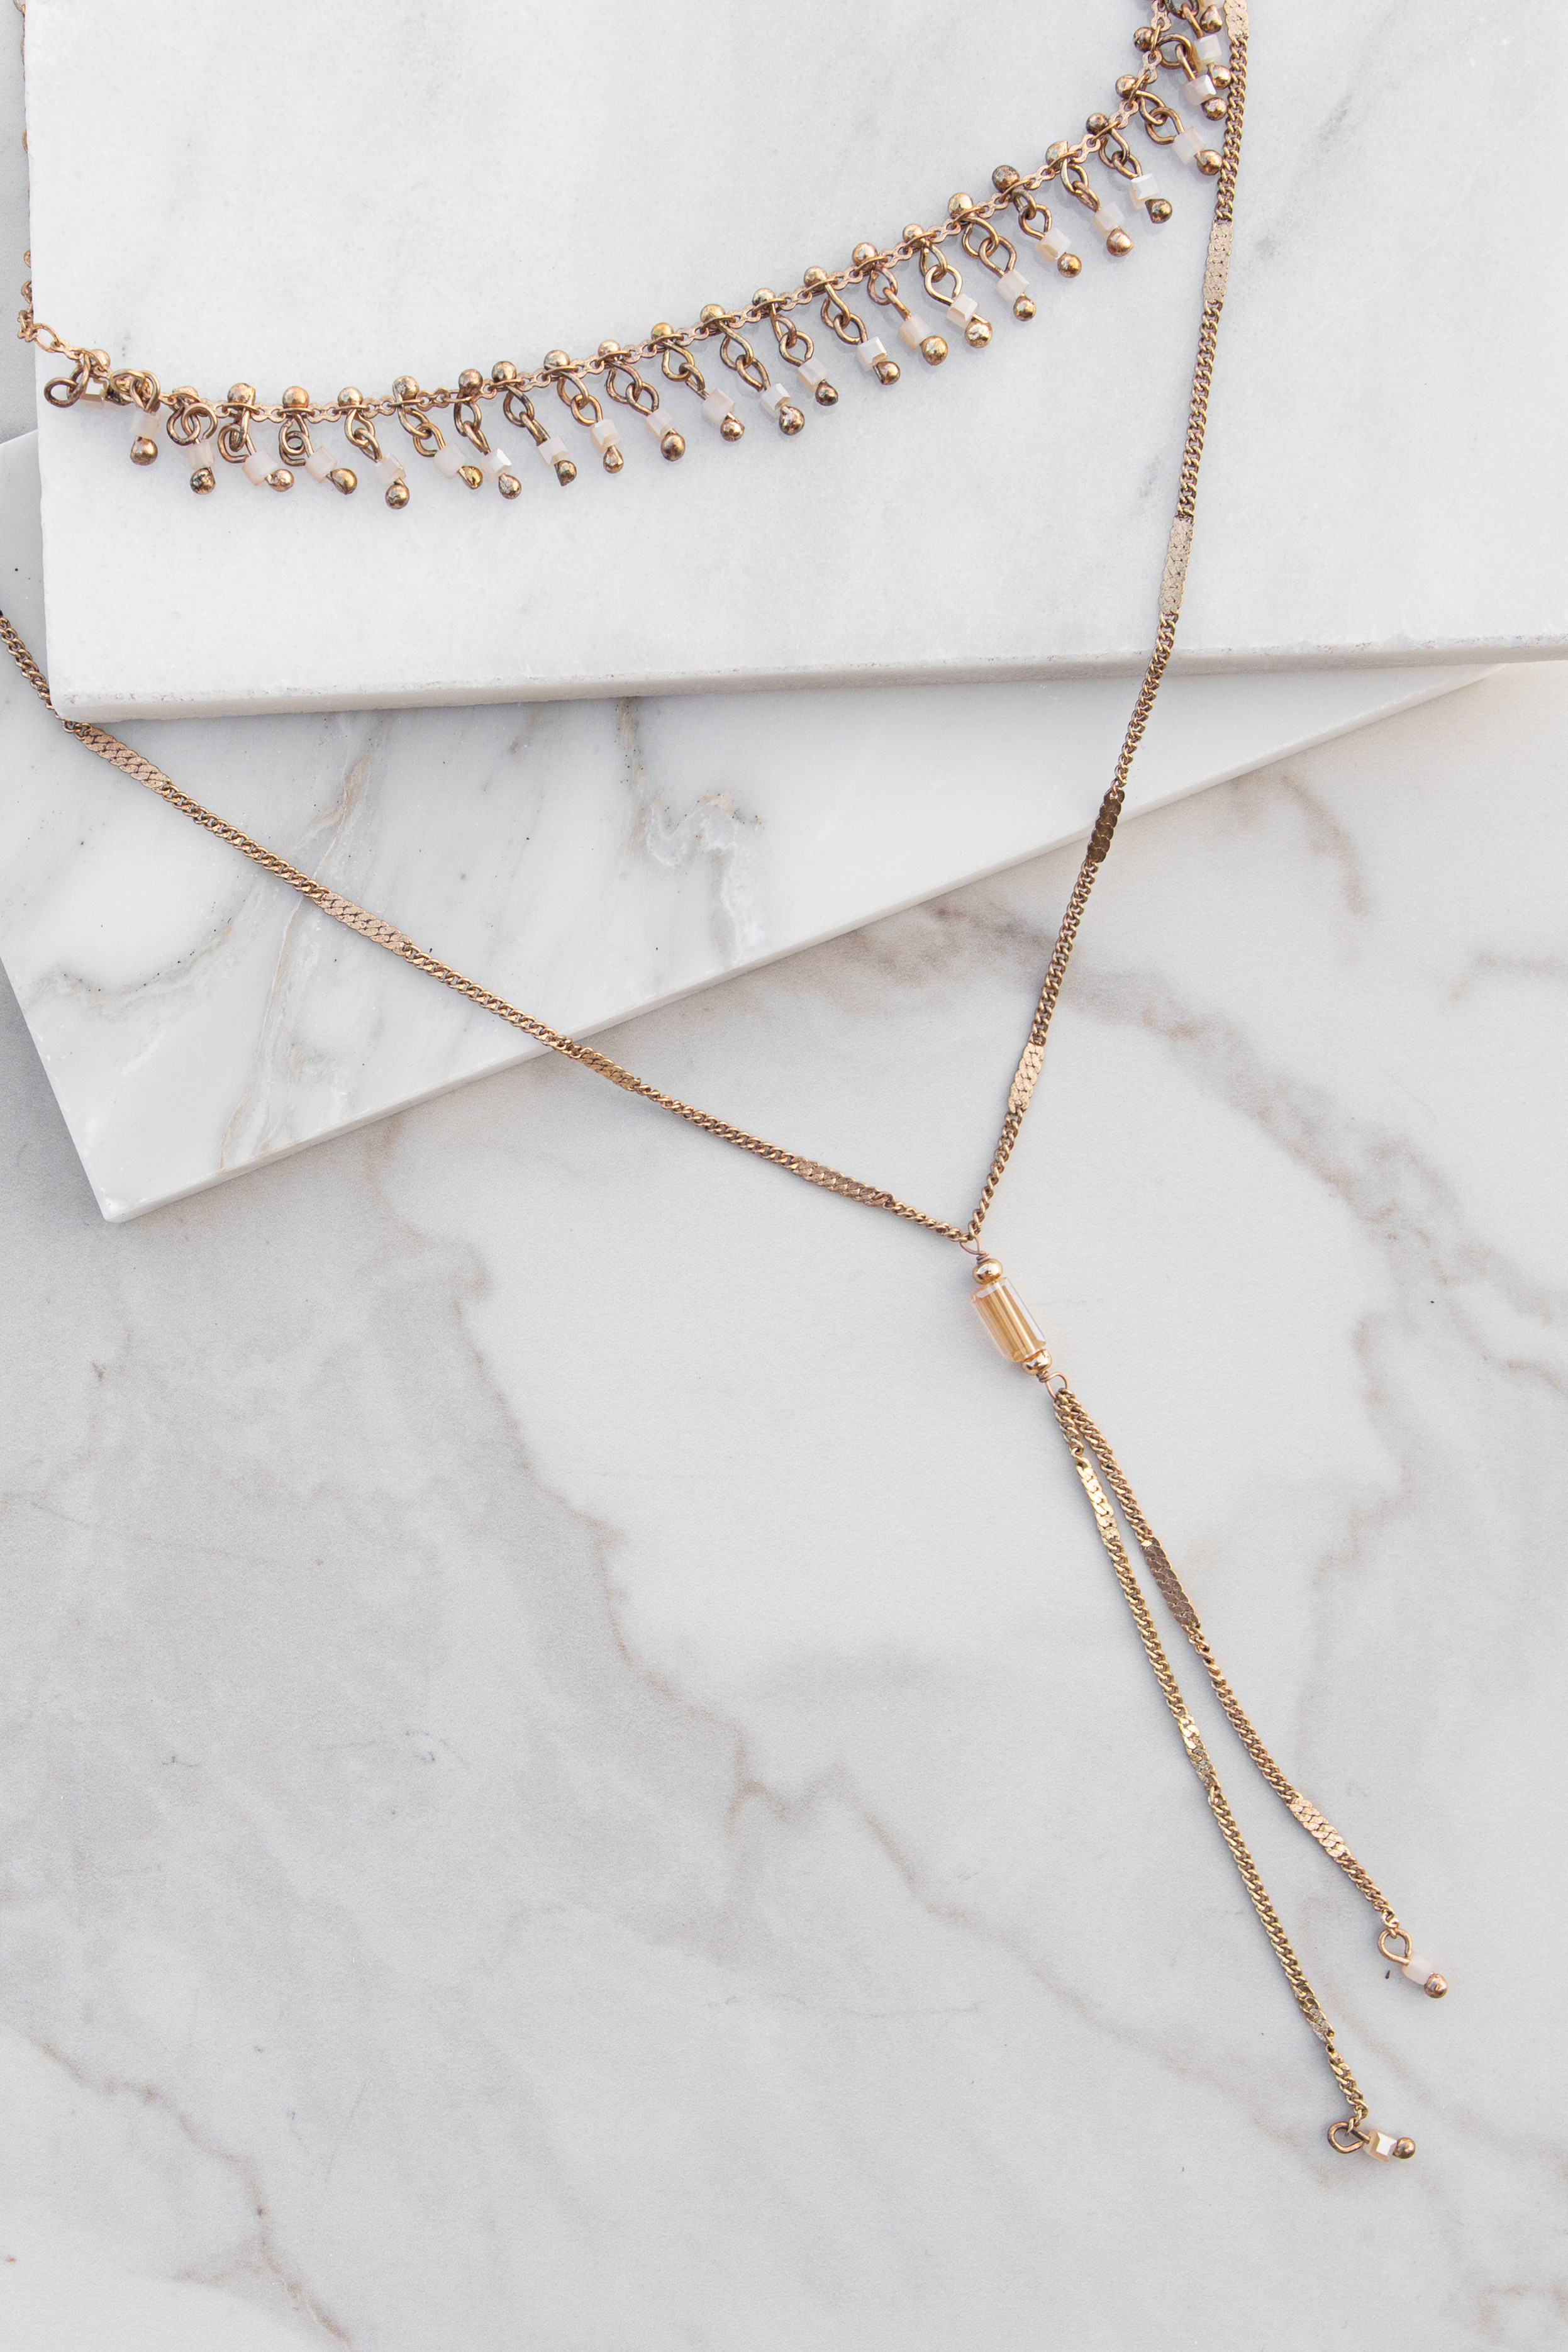 Antique Rose Gold Layered Necklace Pearlescent Bead Details